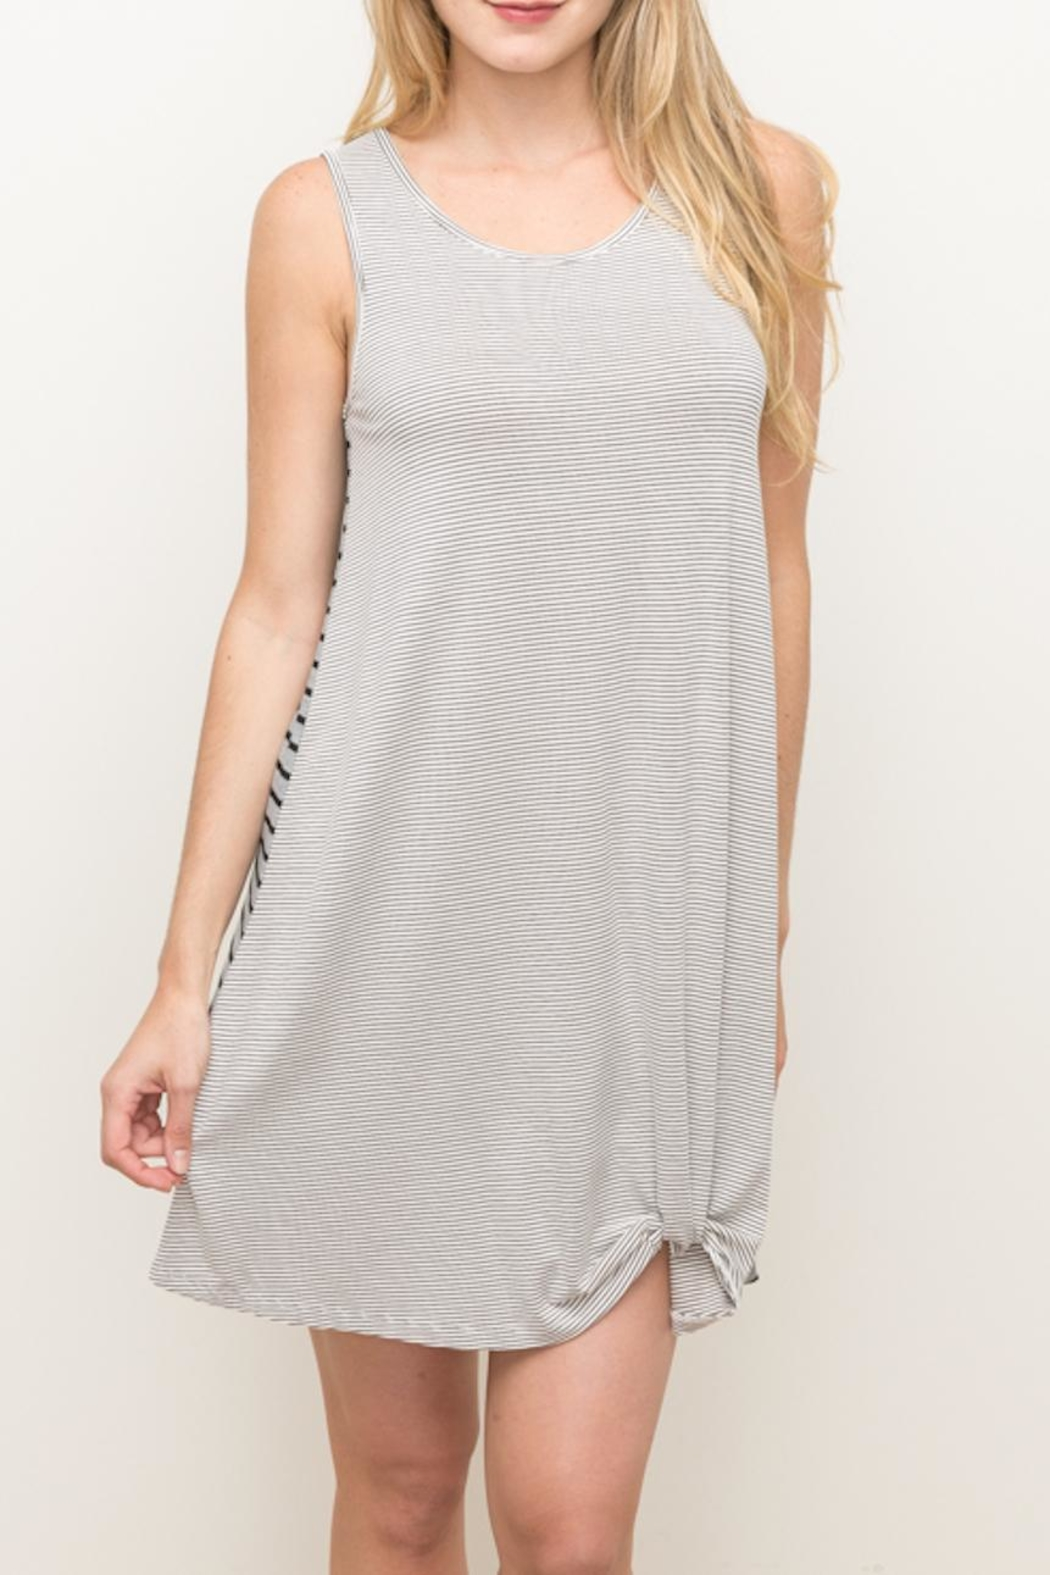 Hem & Thread Knotted Tank Dress - Side Cropped Image